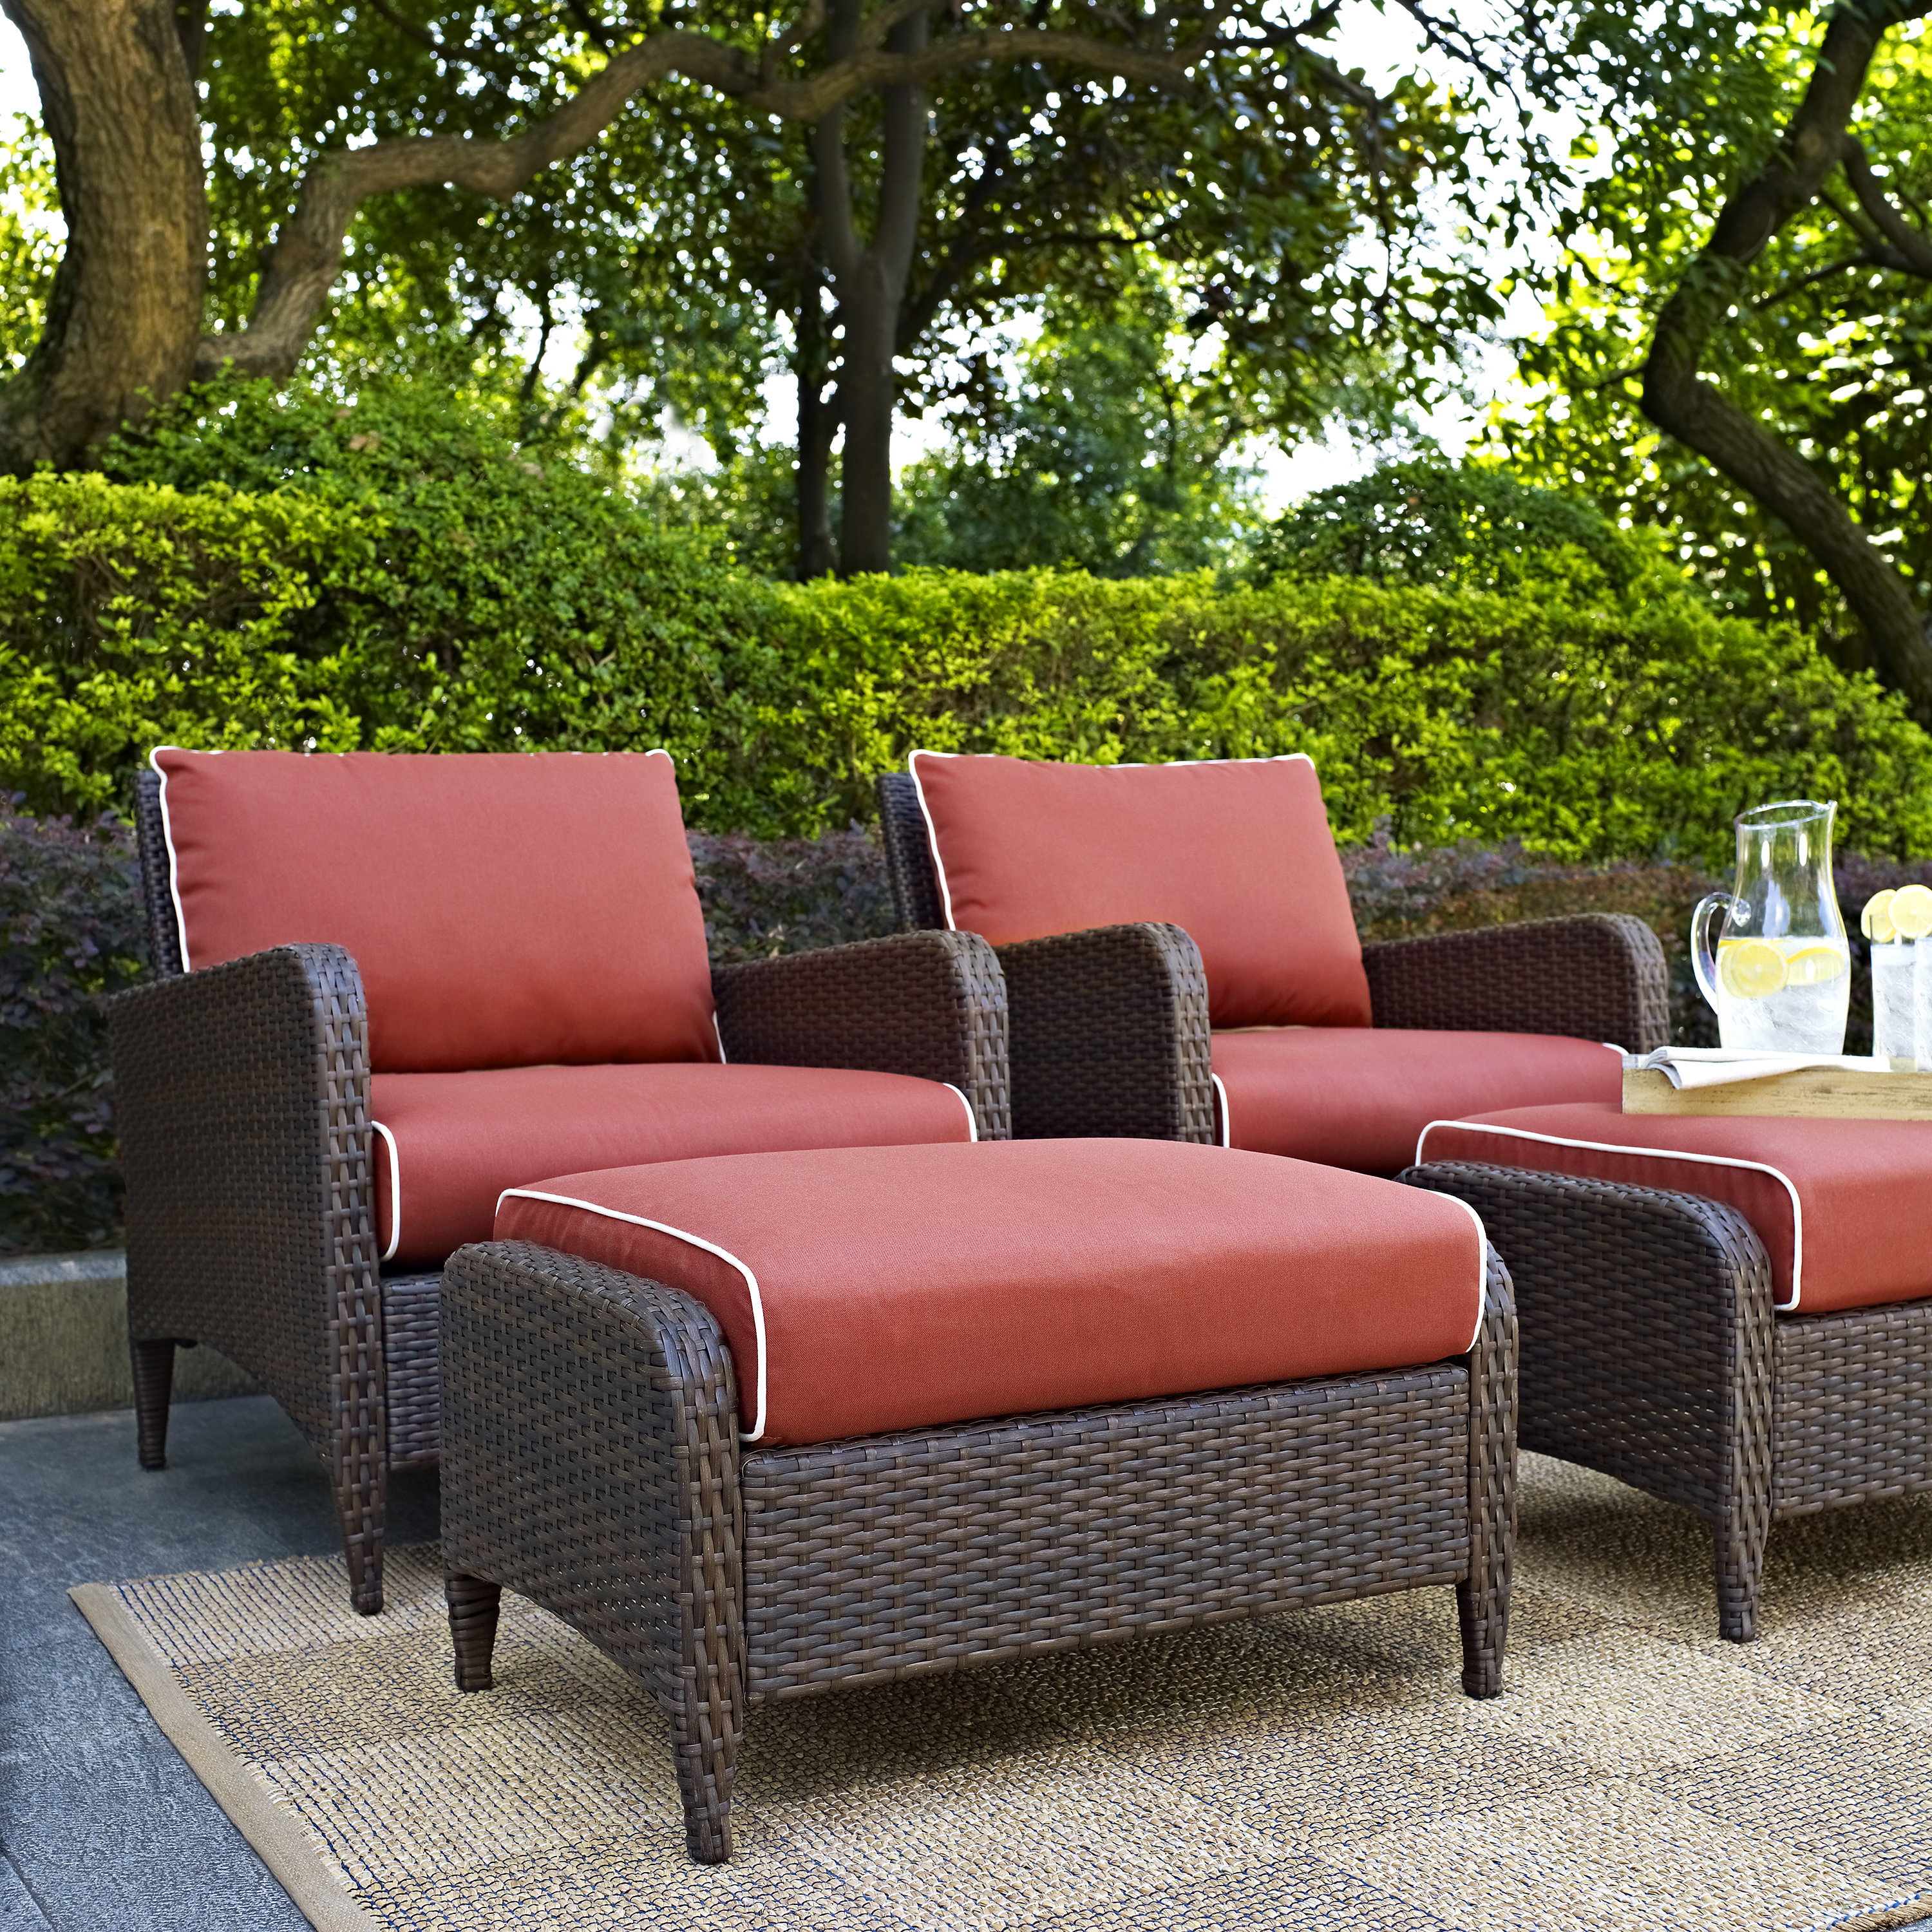 Mosca Patio Loveseats With Cushions For Famous Mosca Traditional 4 Piece Conversation Set With Cushions (View 13 of 20)